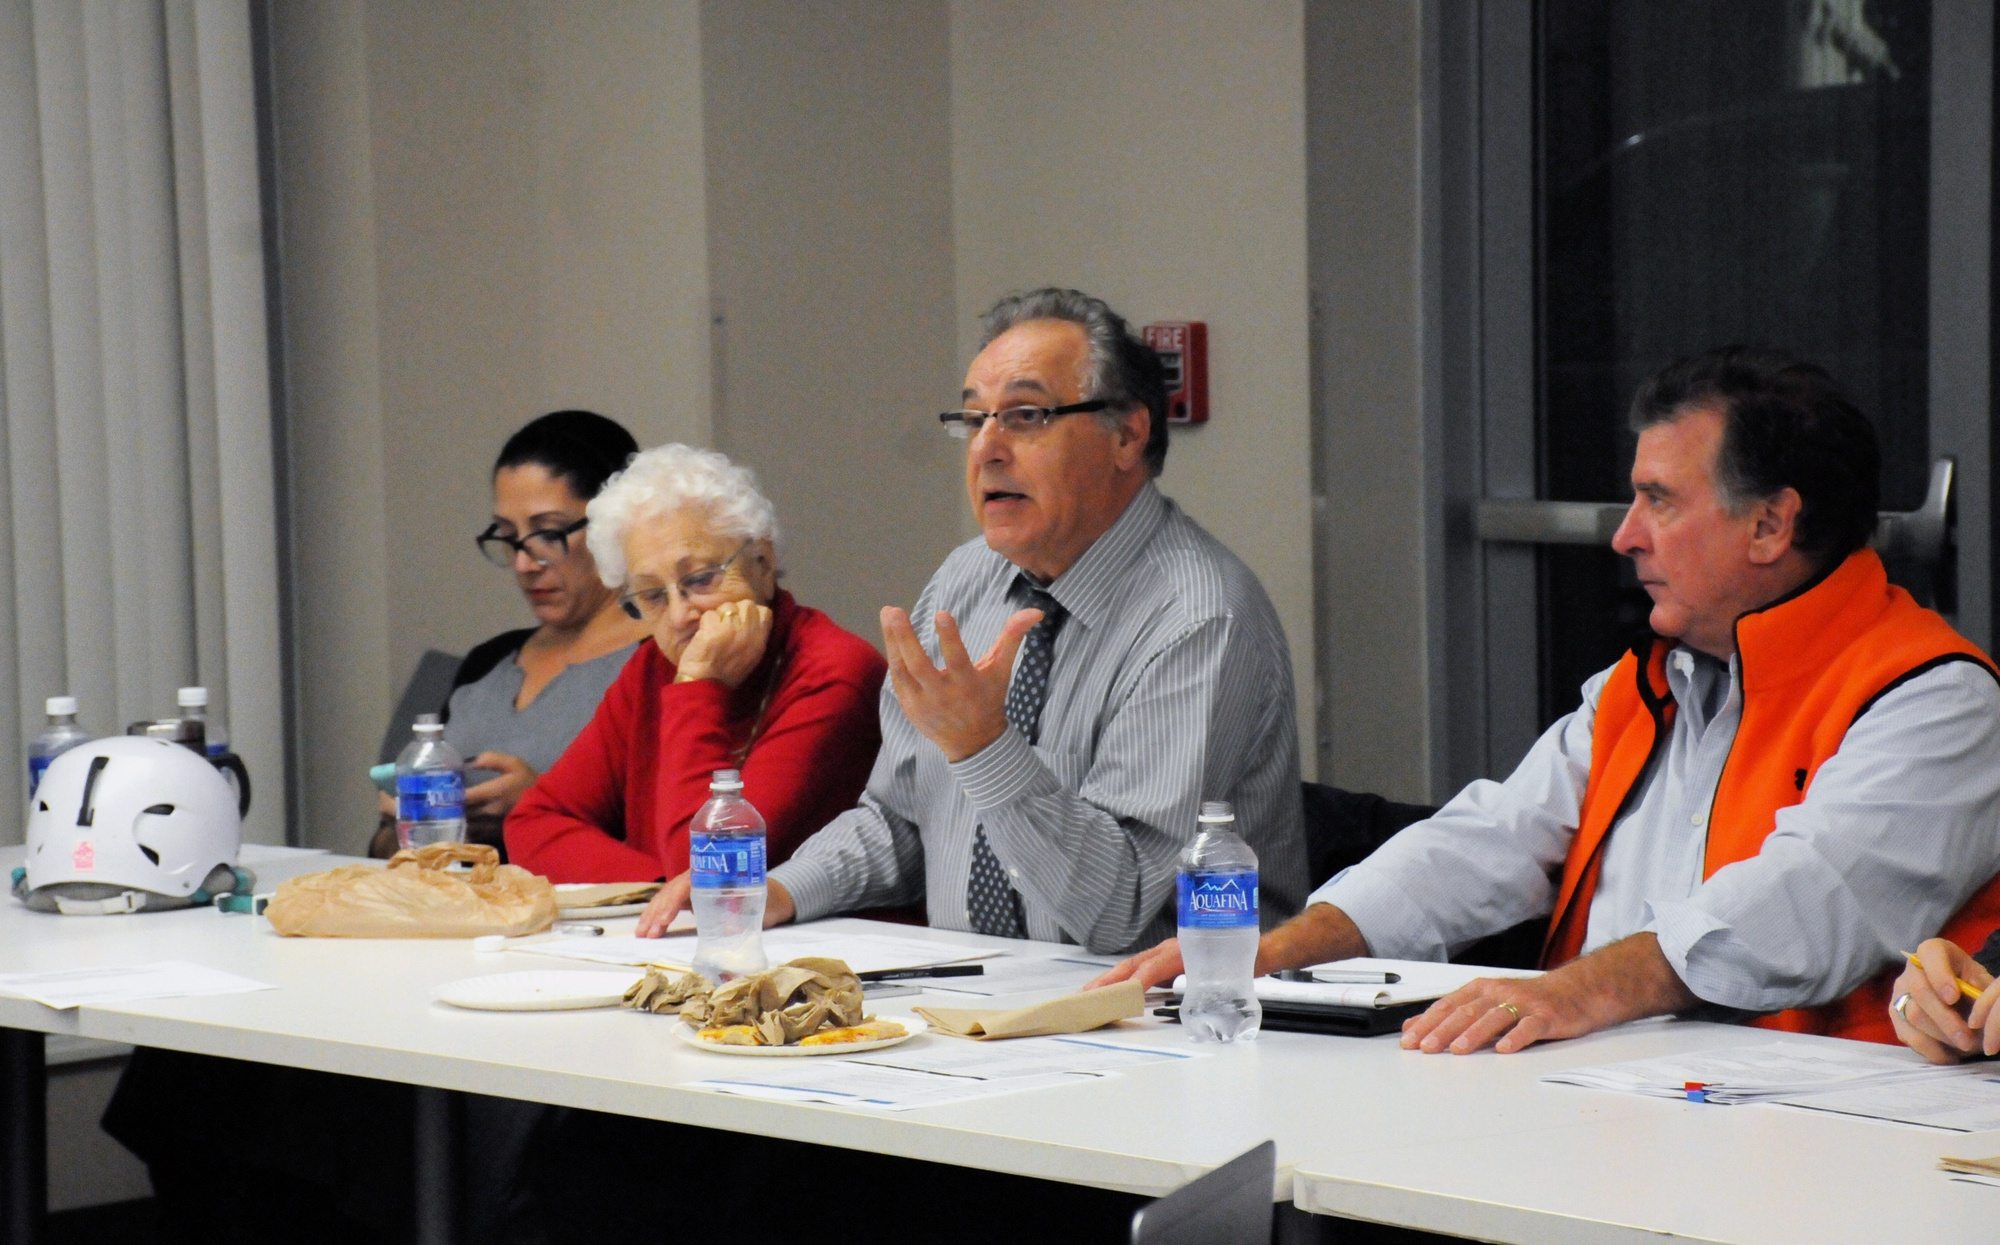 John A. Bruno, Interim Chair of the Harvard-Allston Task Force, leads a two-hour discussion on the University's development in Allston on Wednesday evening.